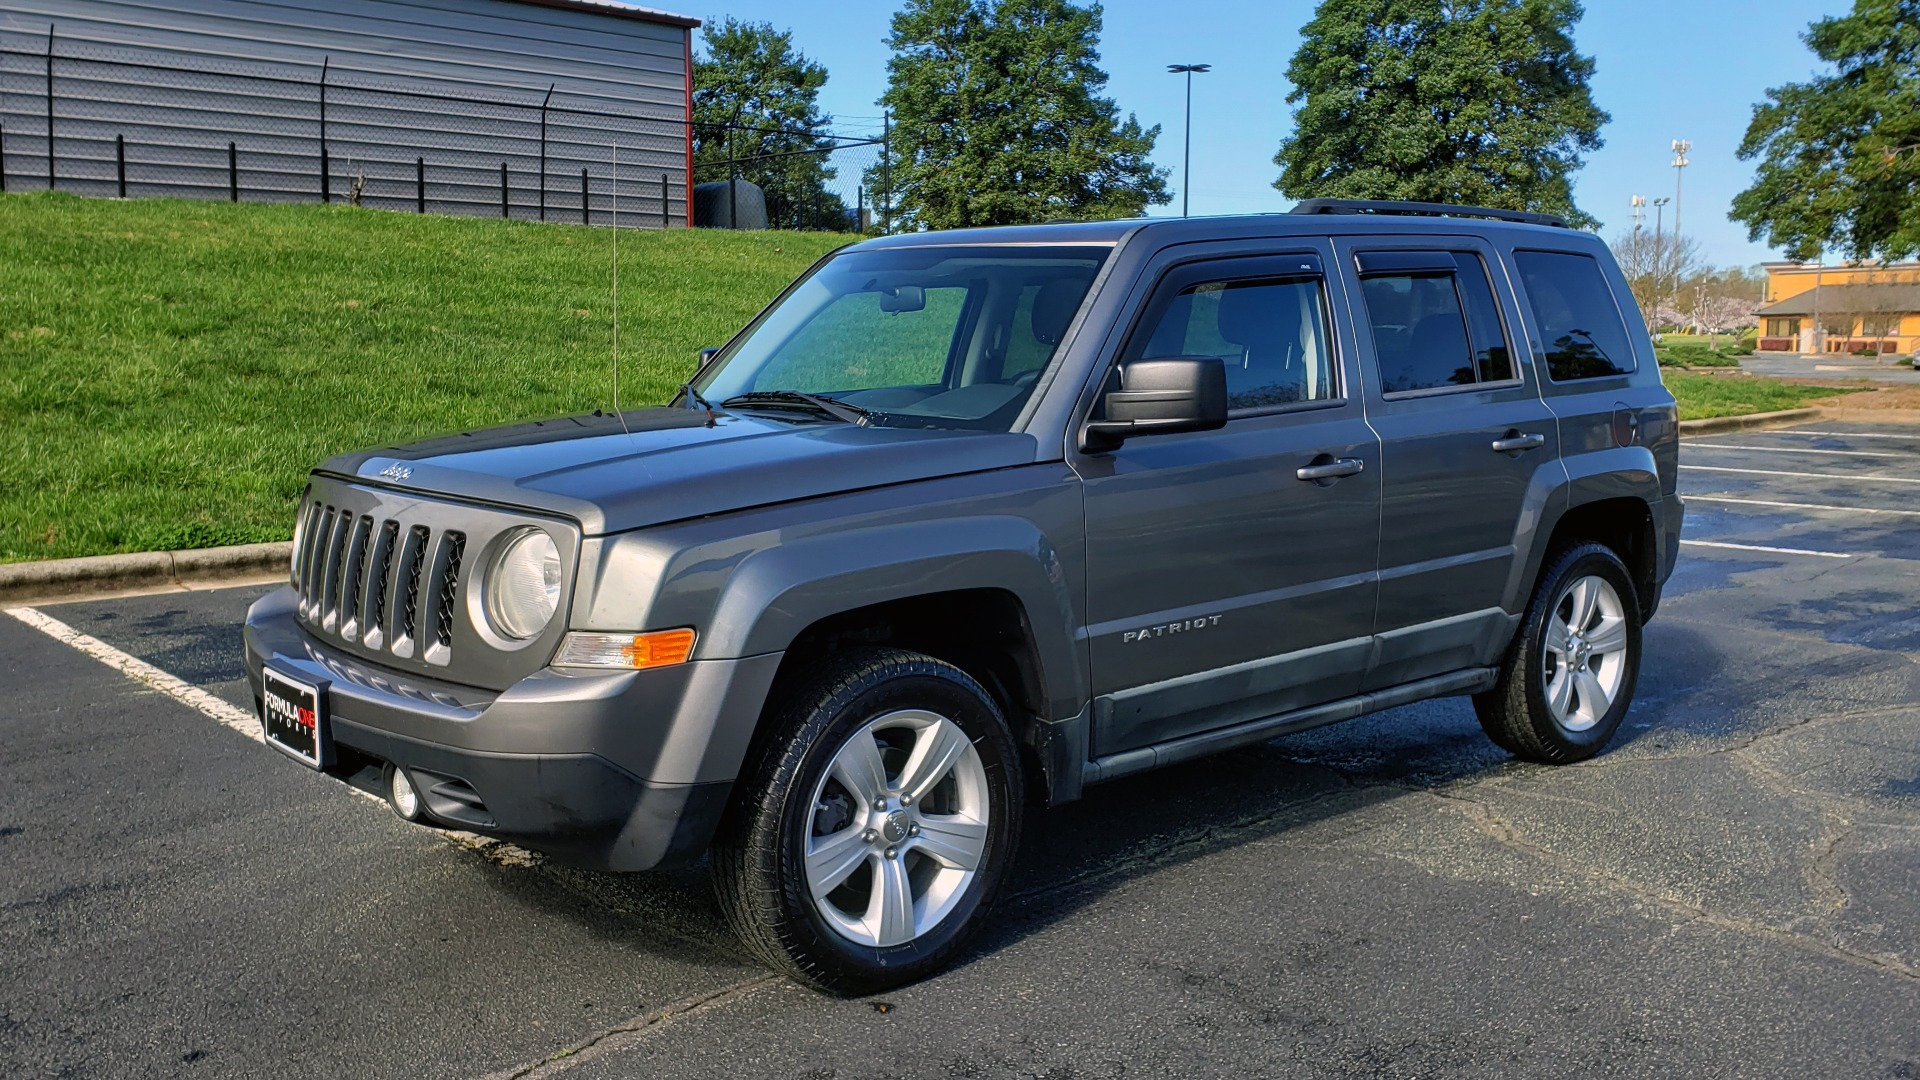 Used 2012 Jeep PATRIOT LATITUDE 4WD / SUNROOF / BOSTON ACOUSTICS SOUND for sale Sold at Formula Imports in Charlotte NC 28227 1